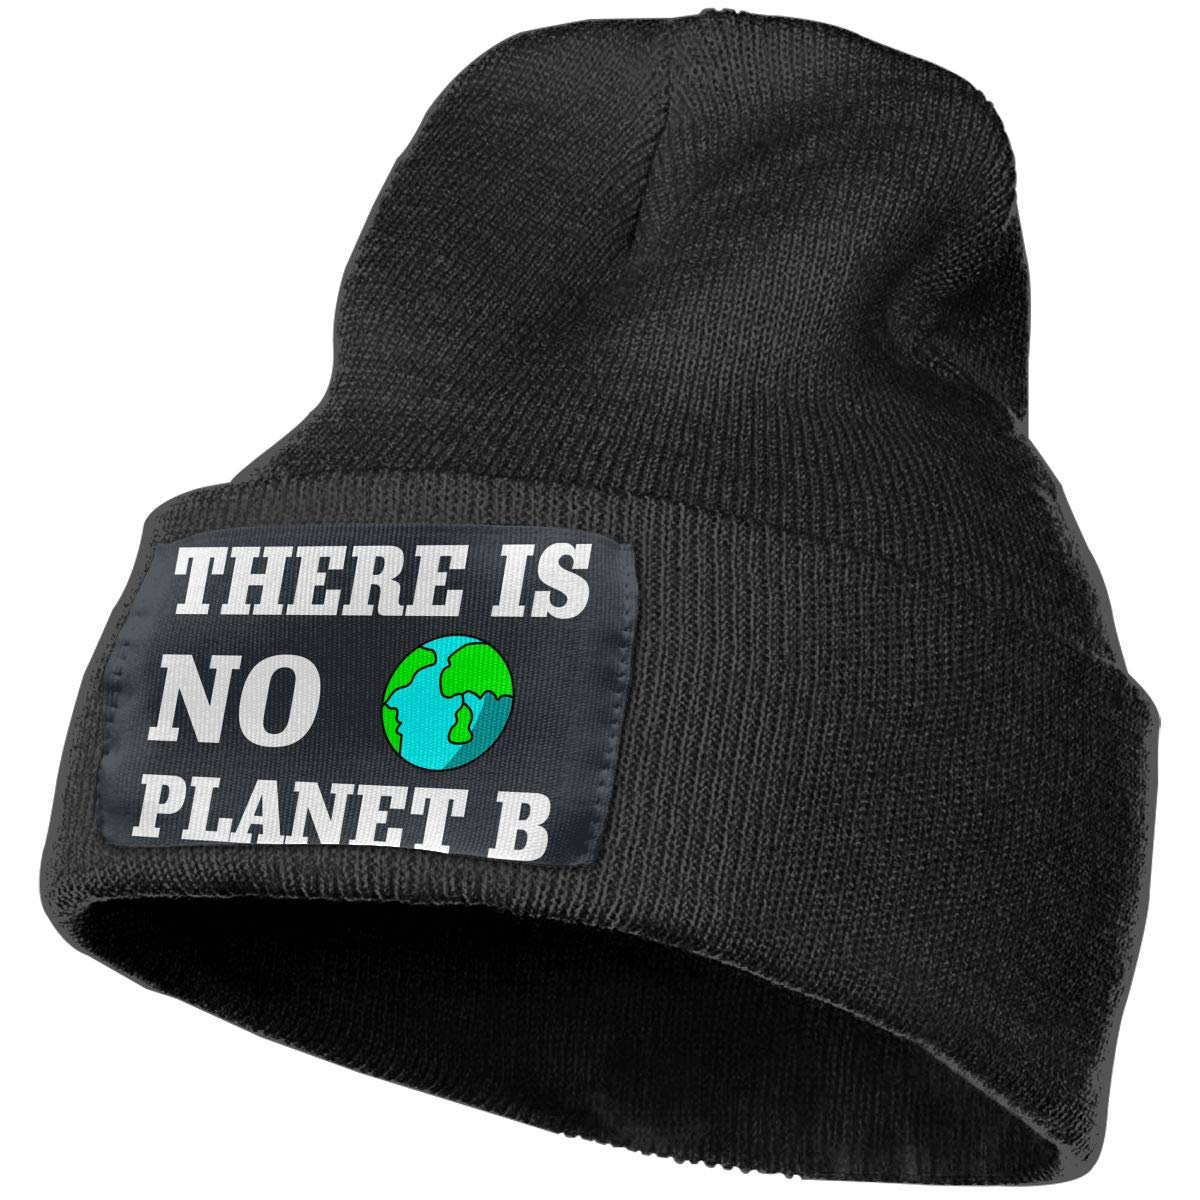 Mens Womens 100/% Acrylic Knitting Hat Cap There is No Planet B Fashion Beanie Hat